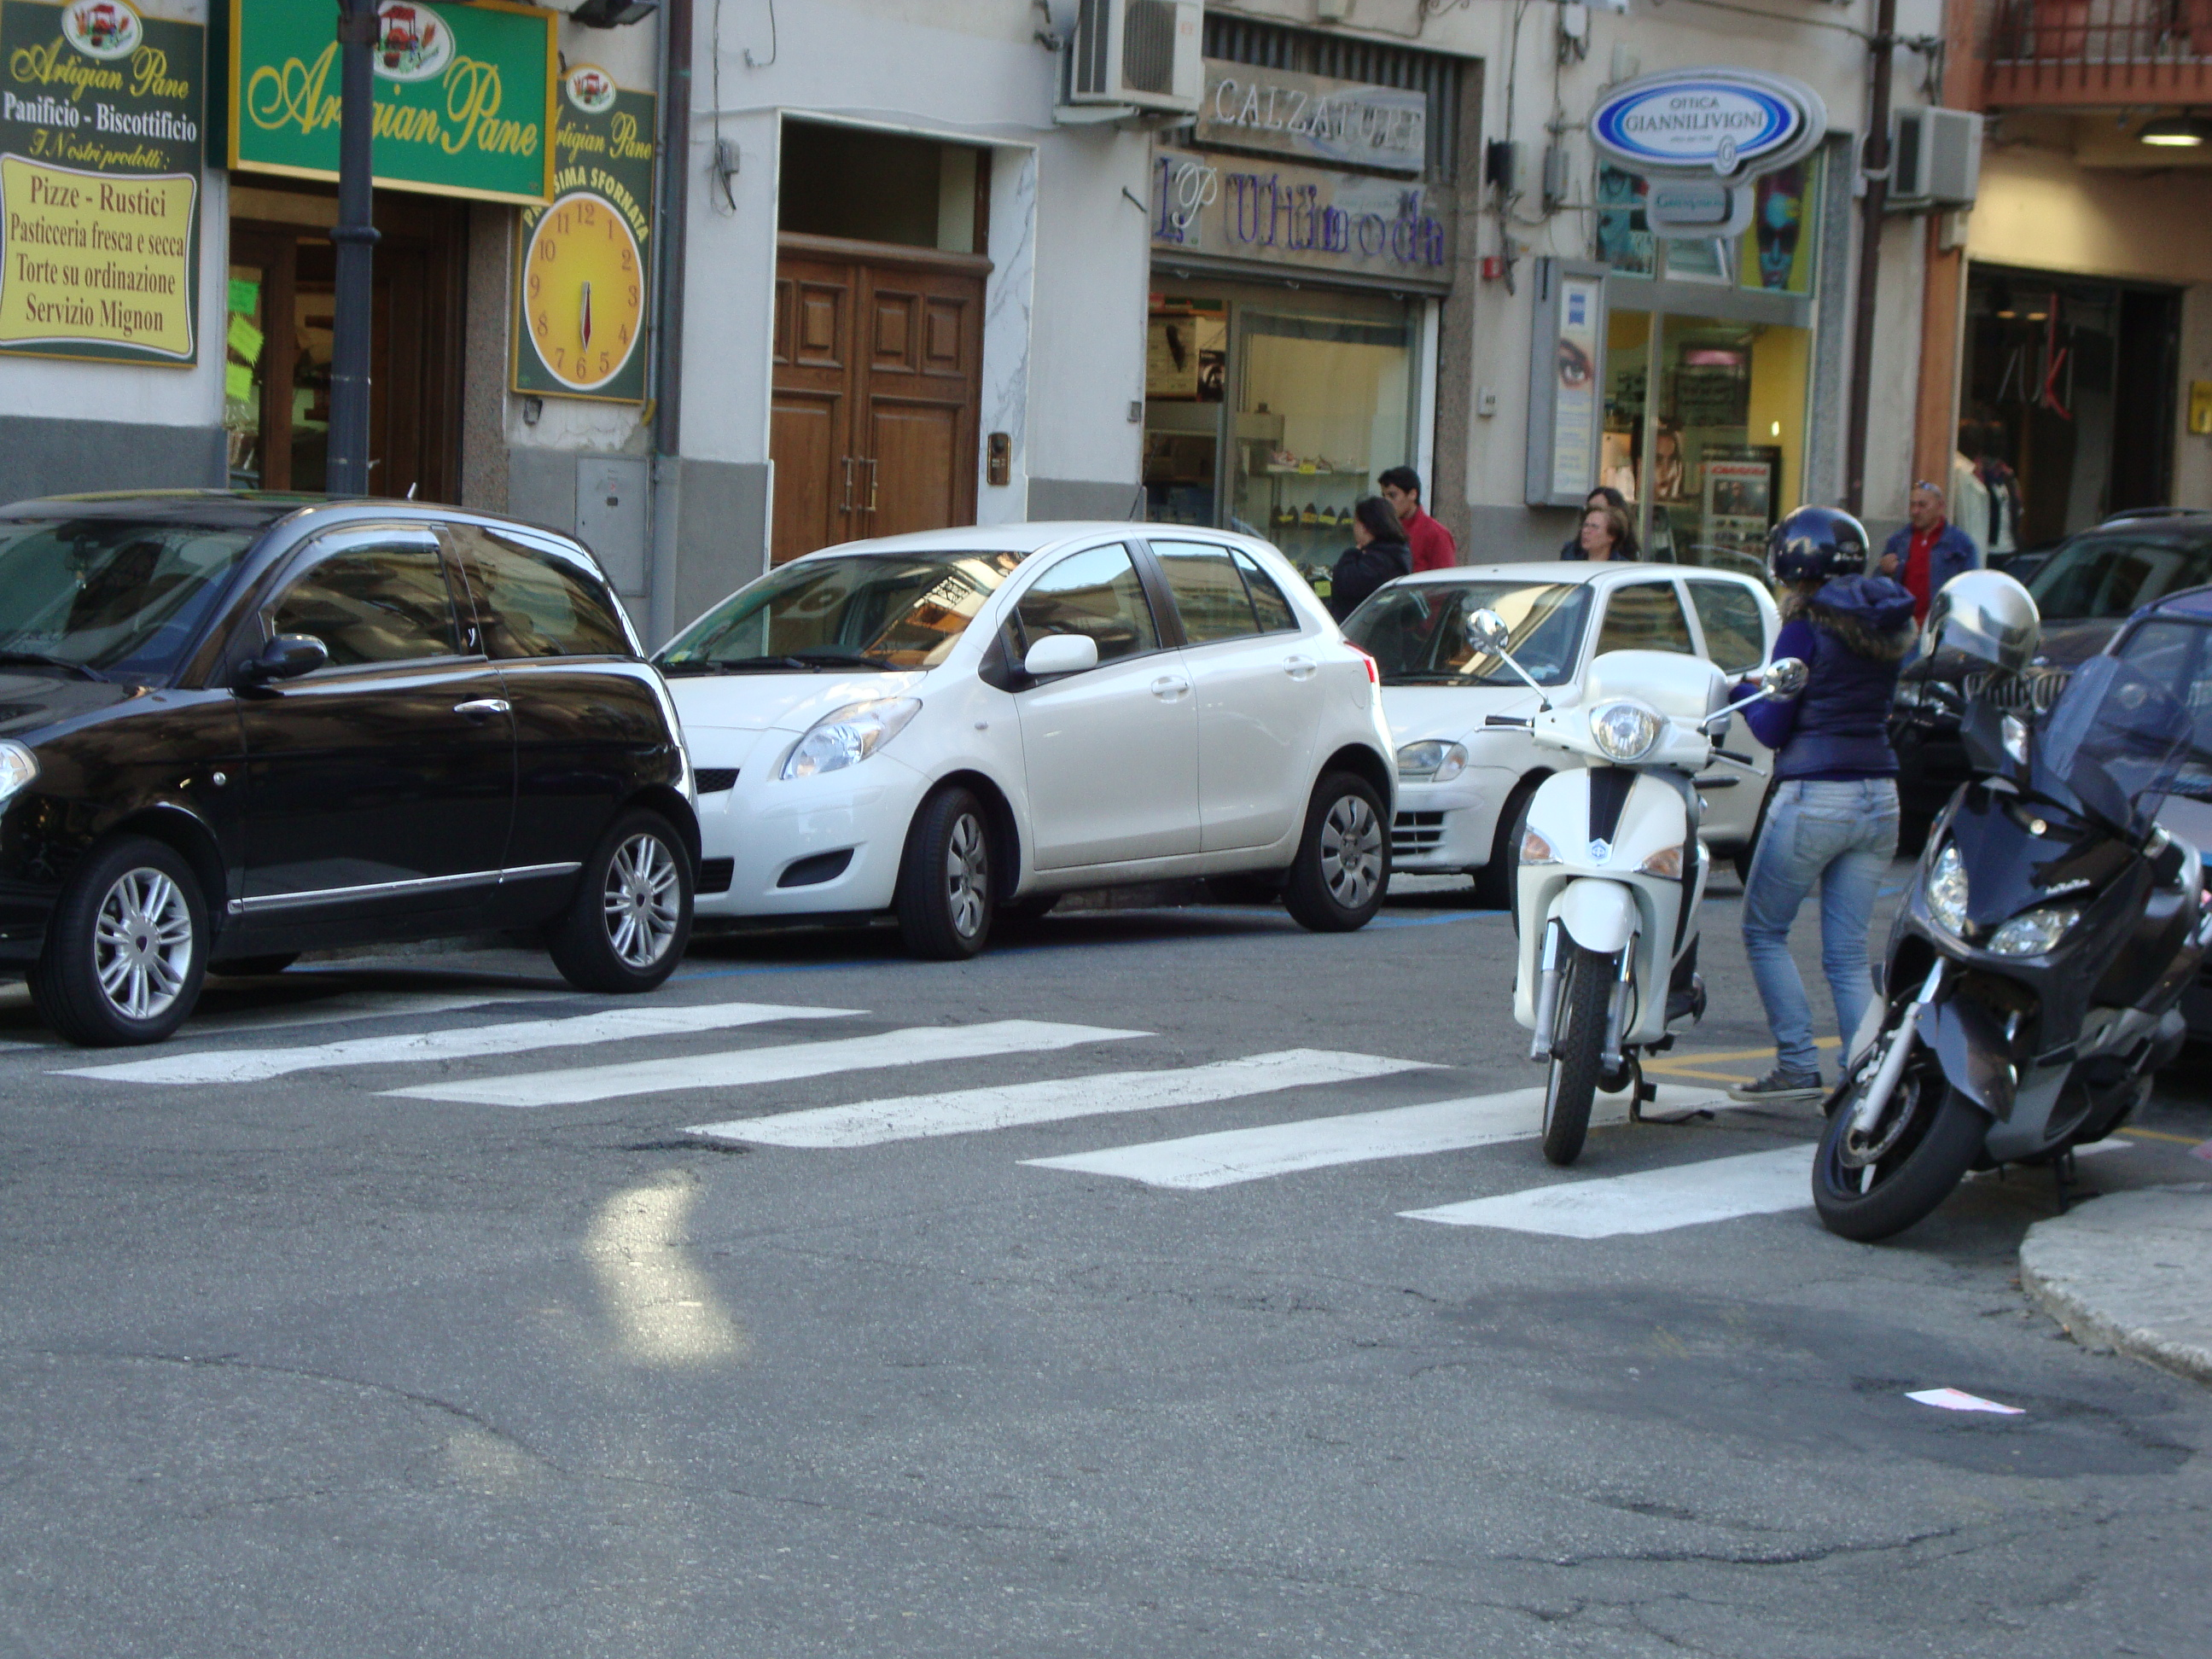 Don't use a pedestrian crossing to cross,